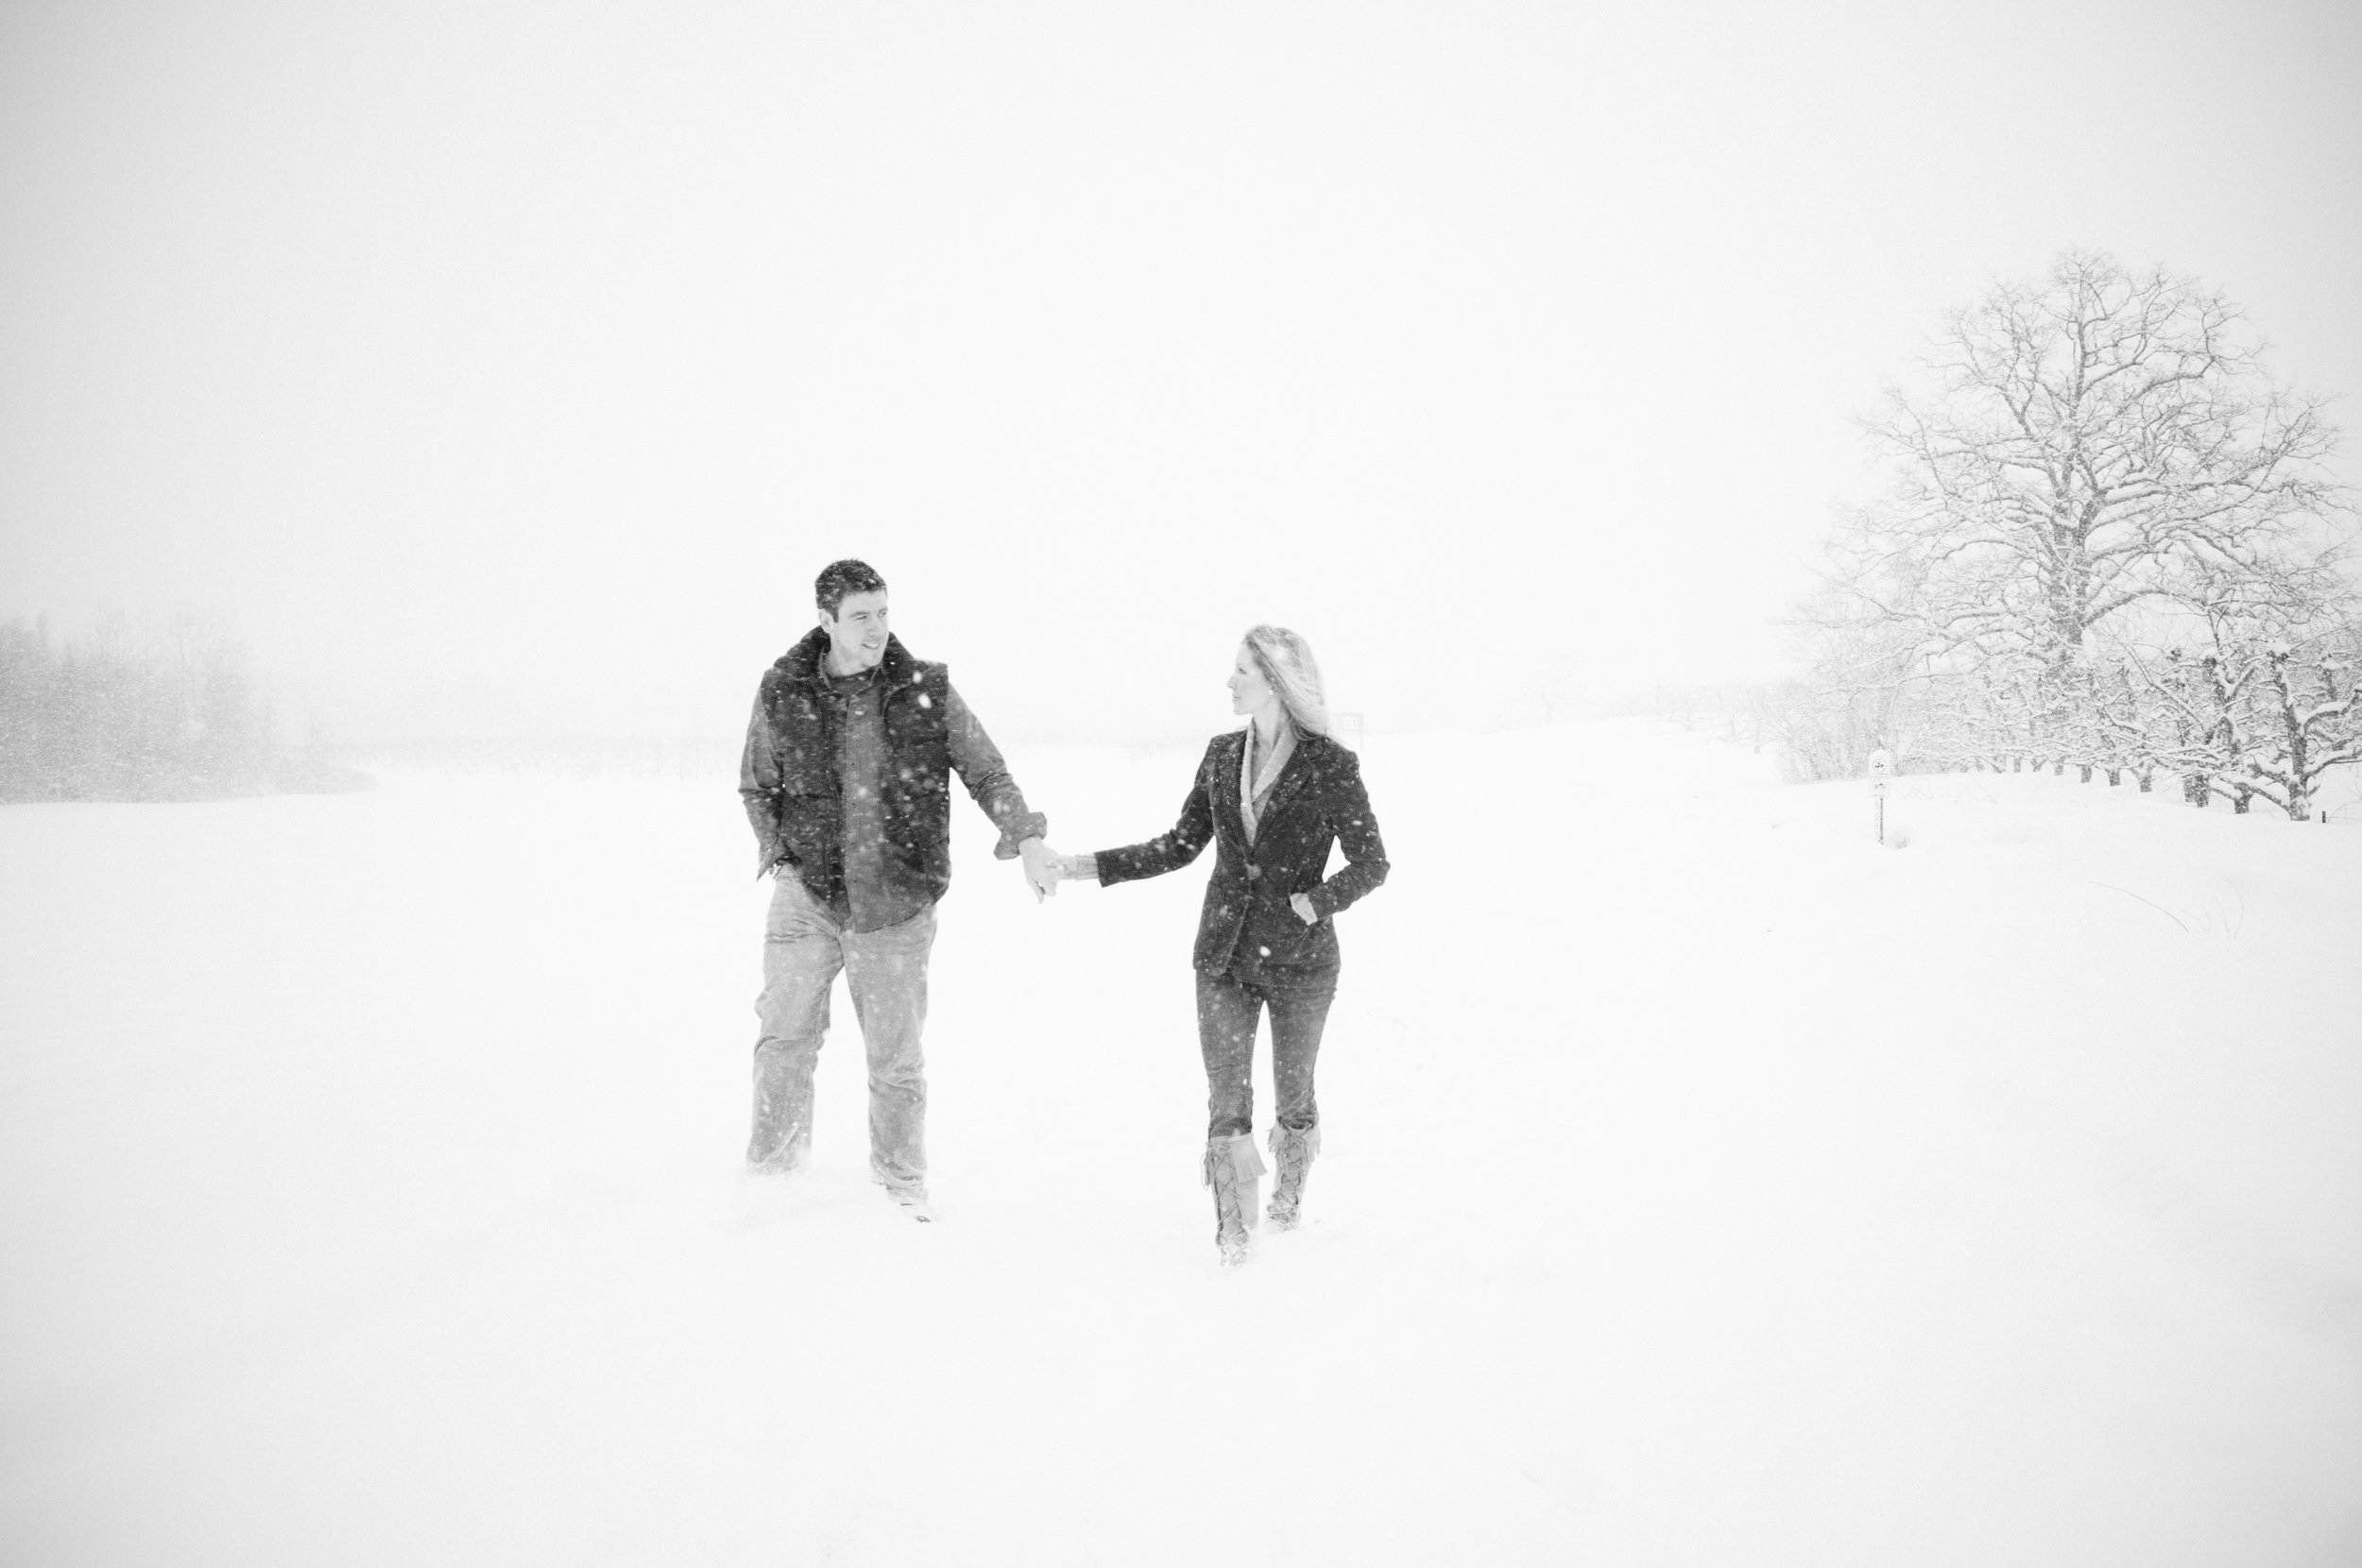 NH Wedding Photographer: Macks Apples Londonderry winter snowing